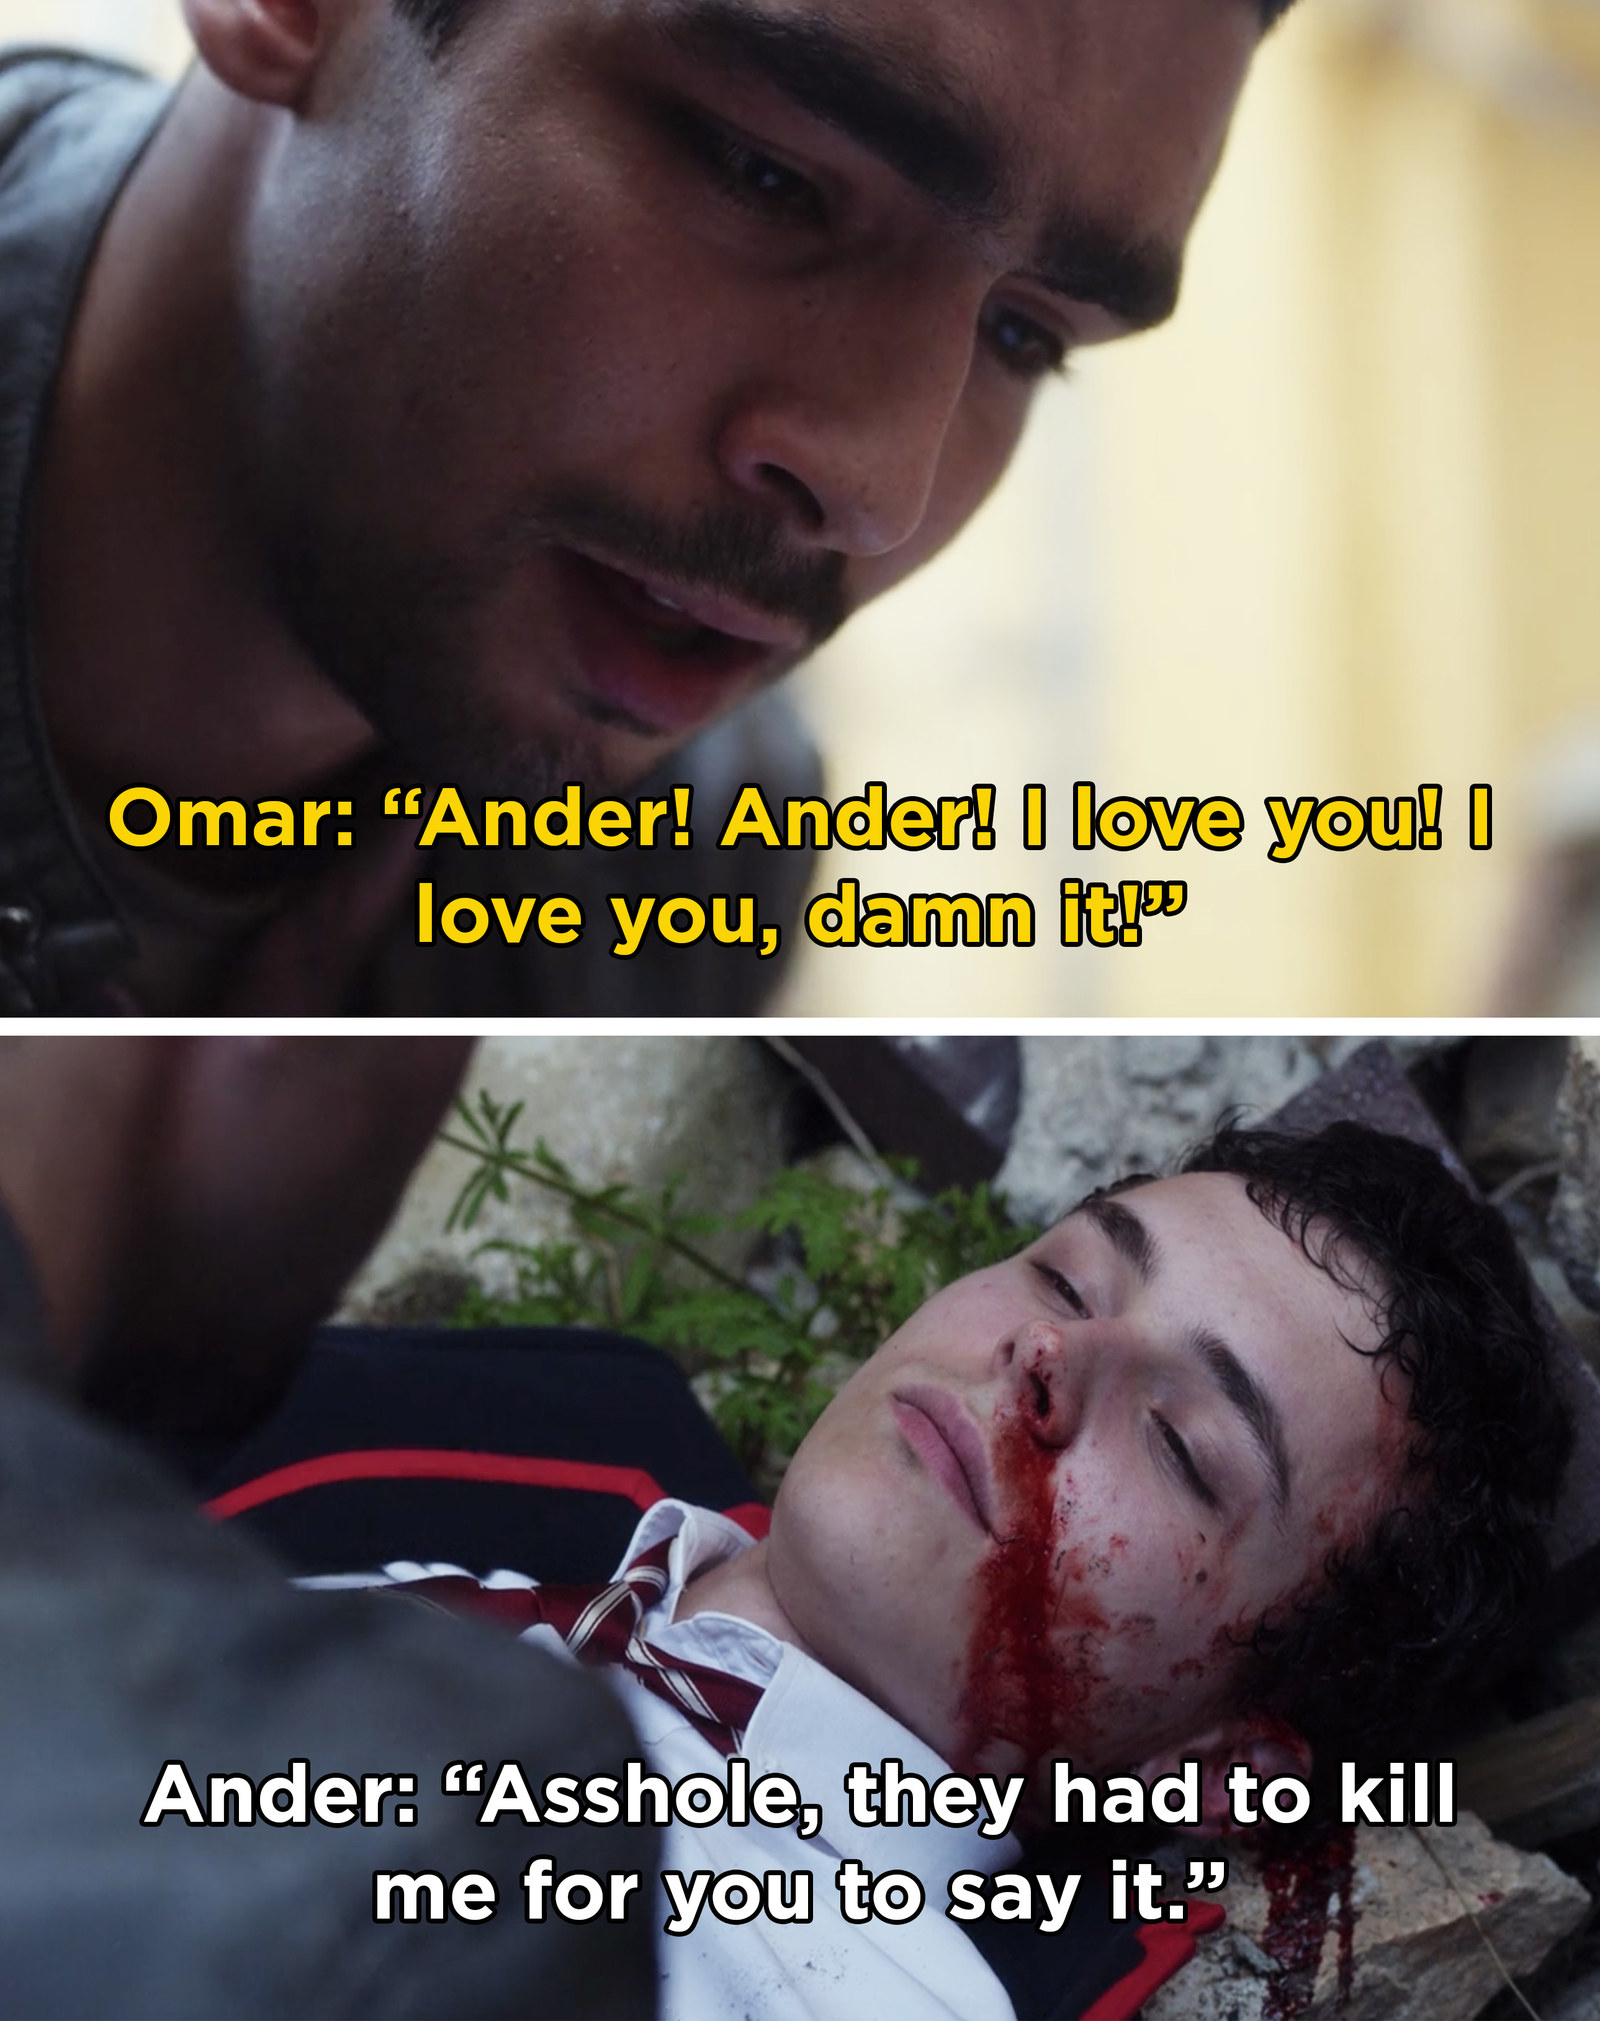 In  Elite , Omar confessed his love for Ander after Ander was beaten up and left for dead.